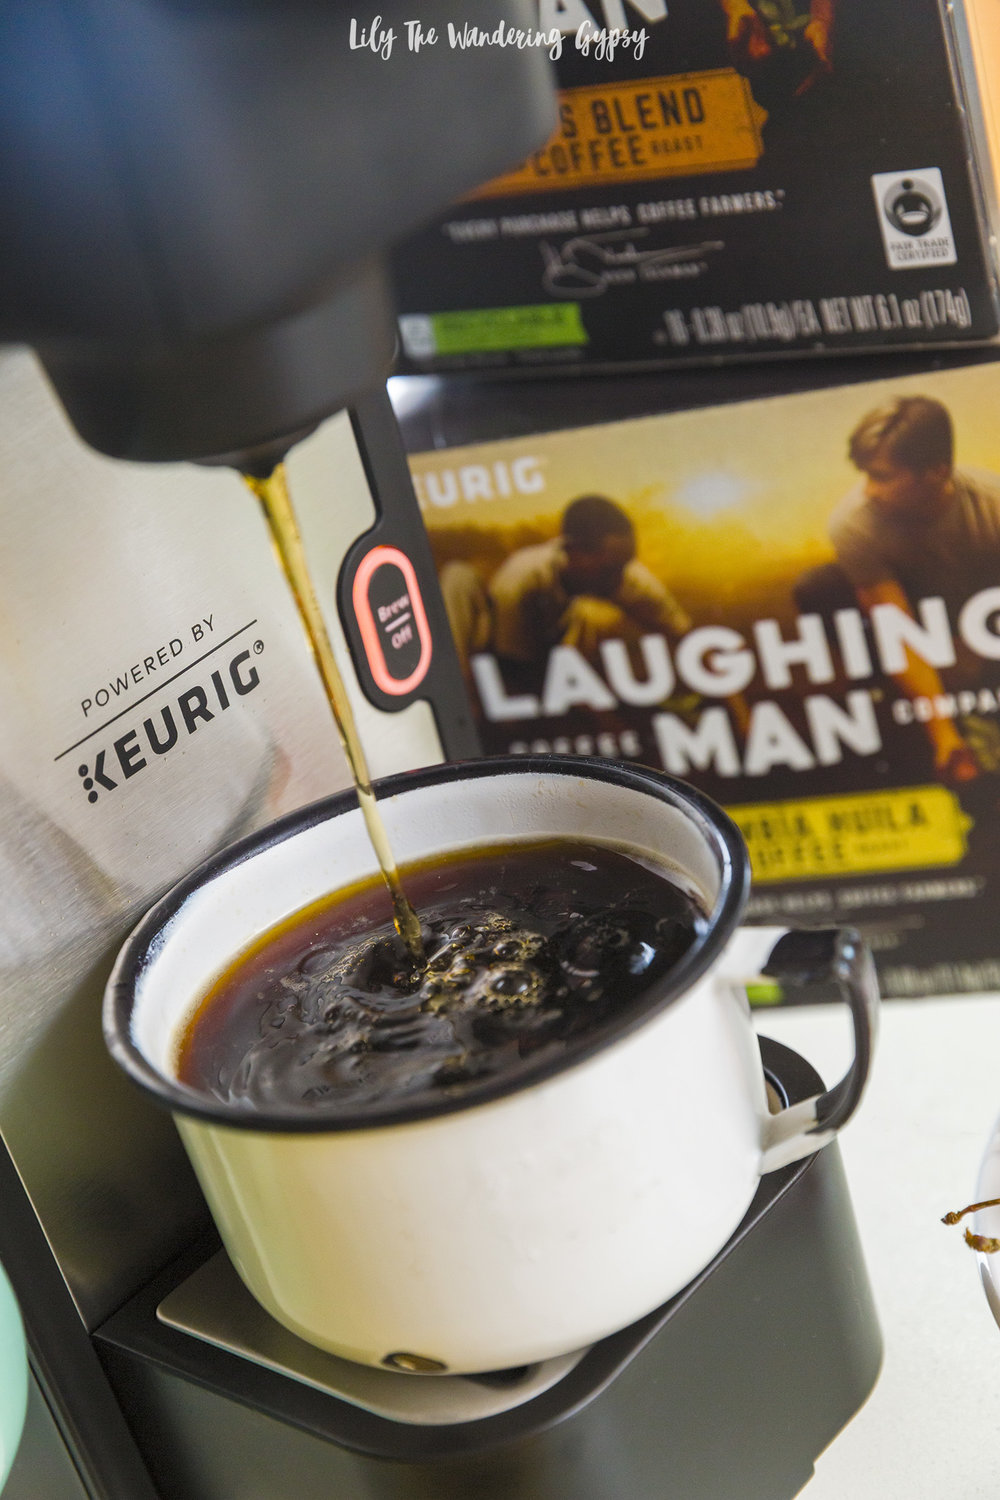 Laughing Man Coffee at Target - #LaughingManCoffee #MakeEveryCupCount #Target